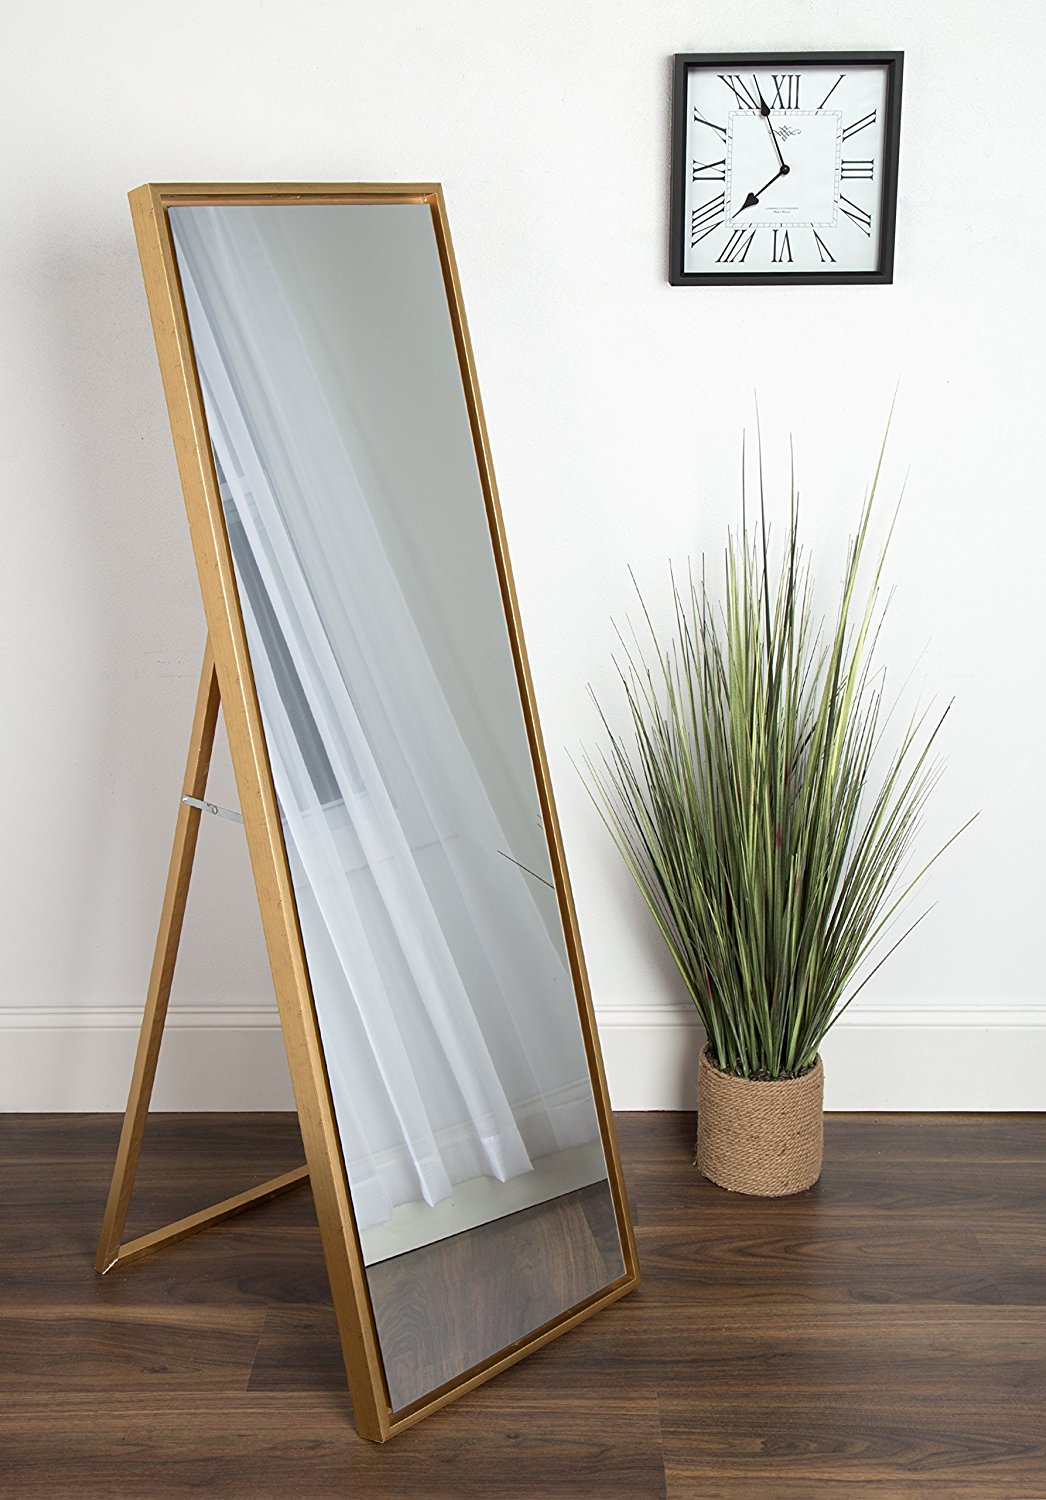 Full Length Mirror with Easel Stand | WorkChic